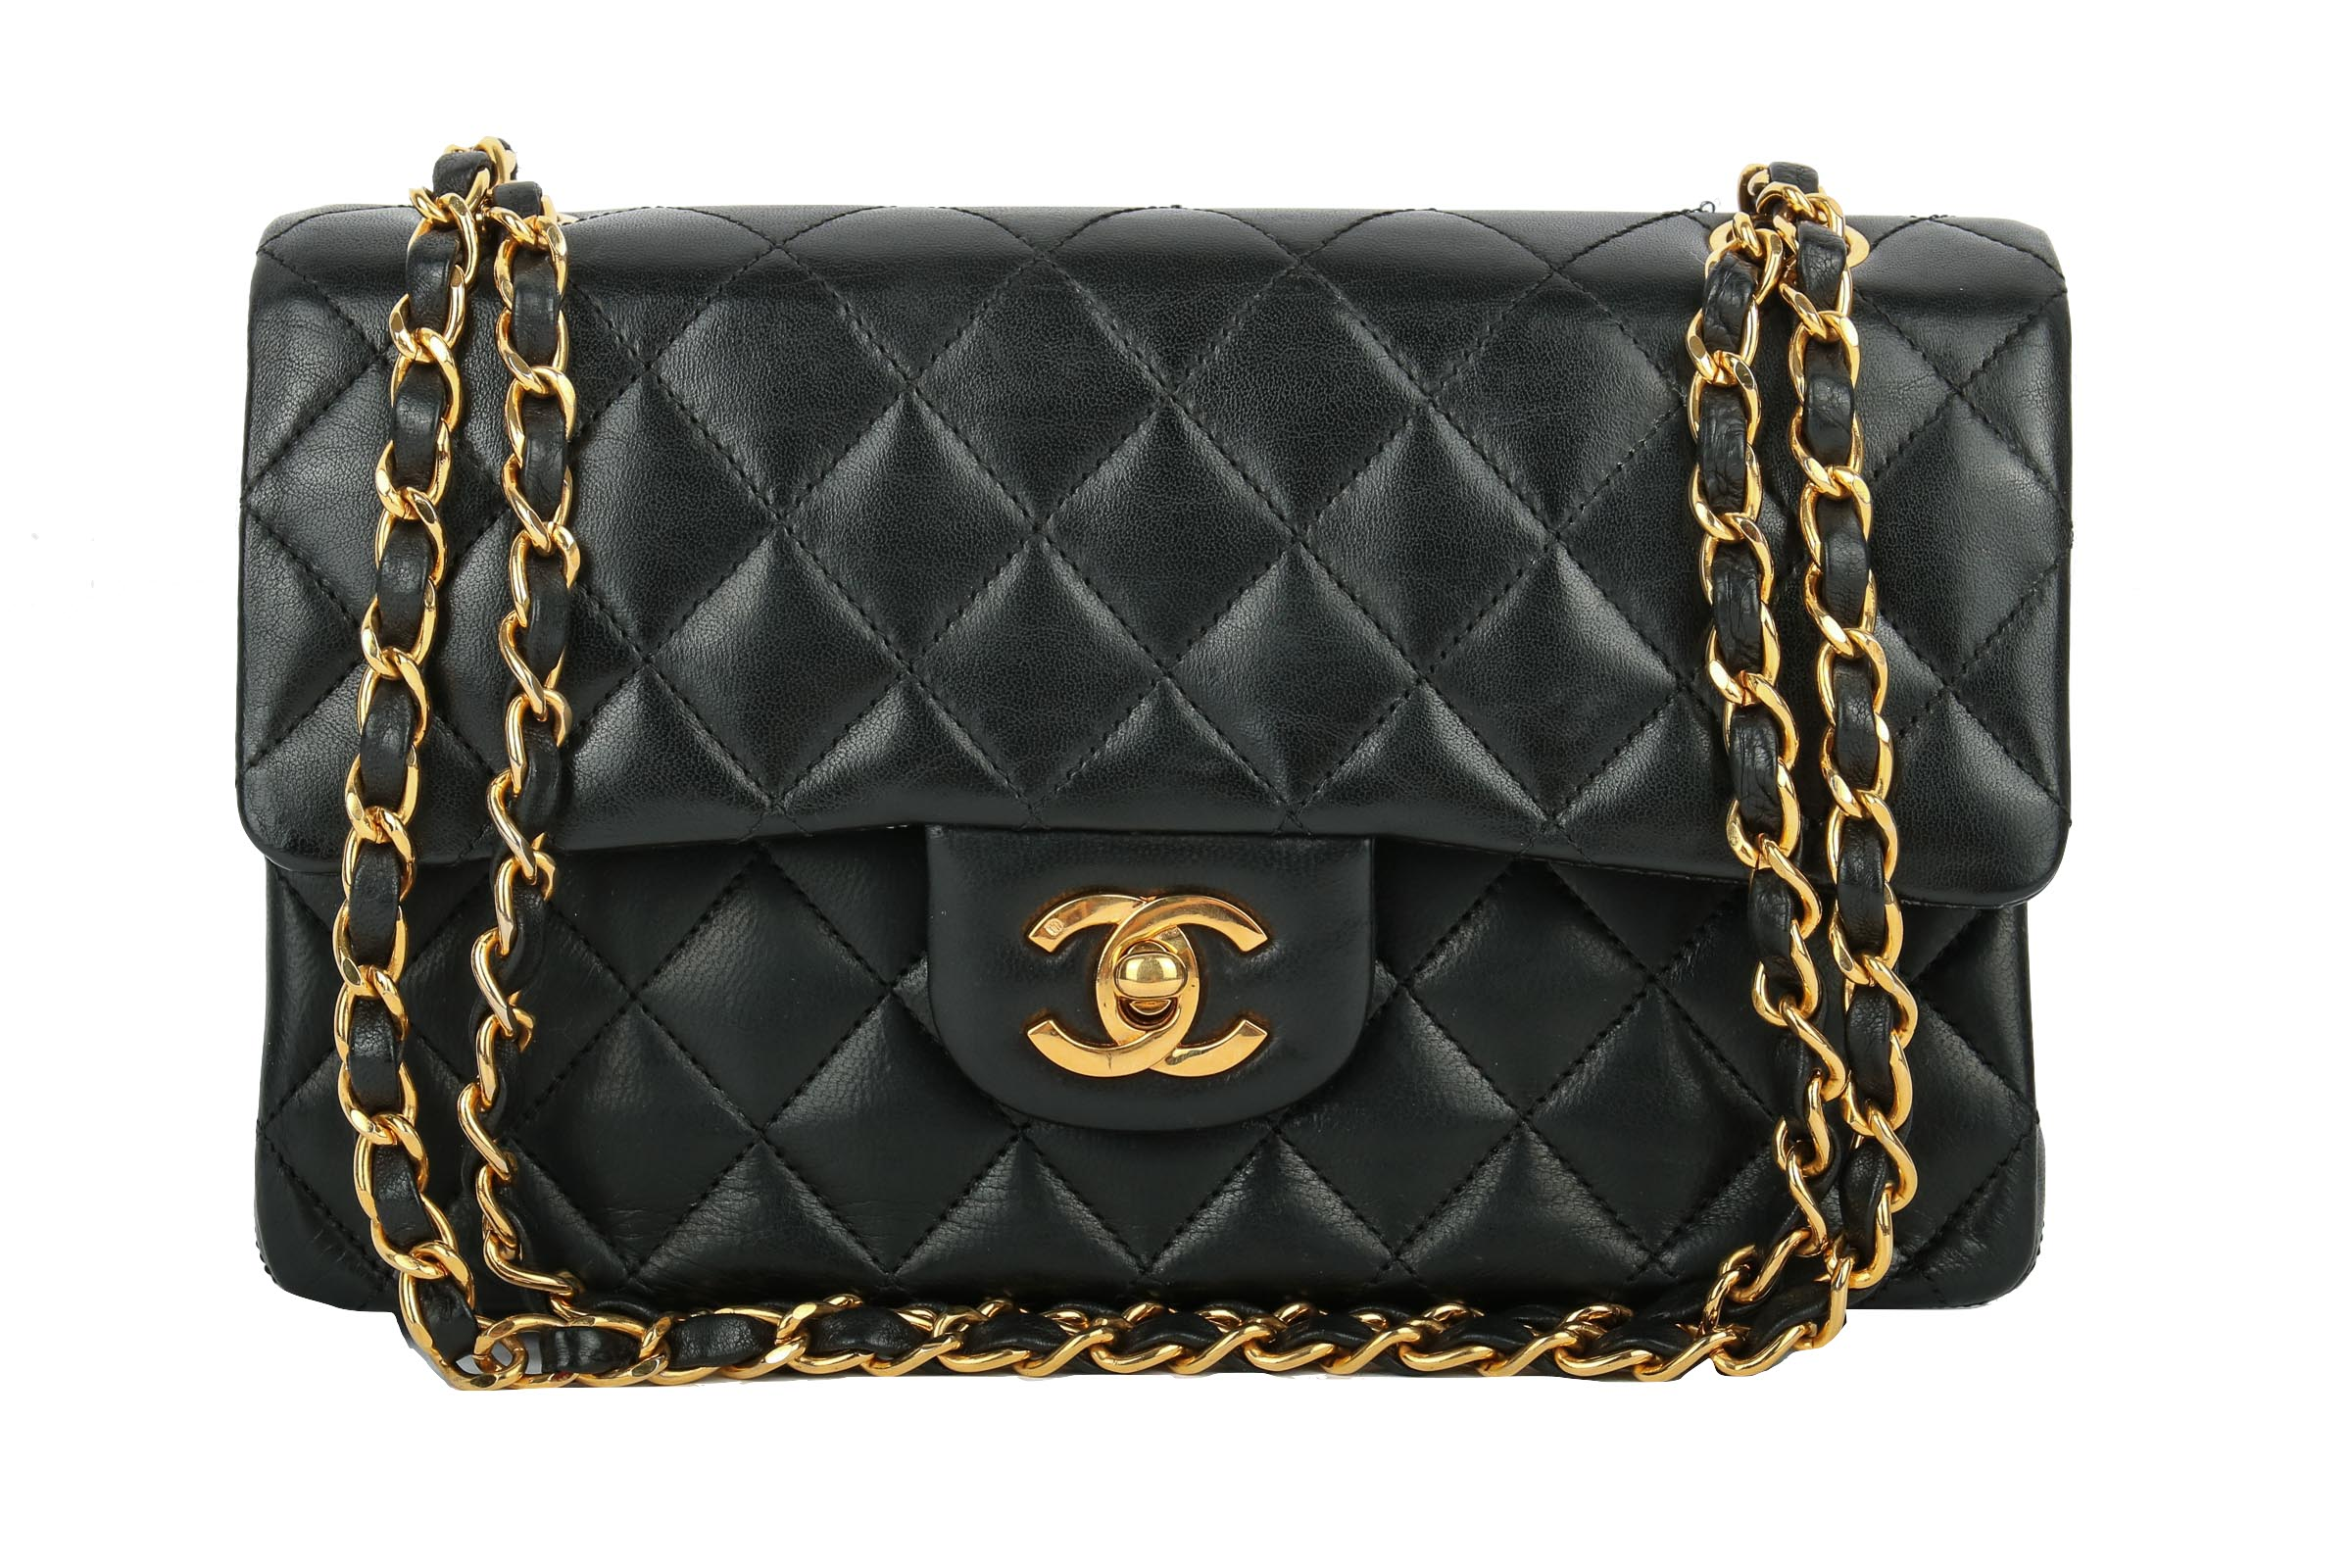 628f211c6b4ba Chanel Timeless Classic Double Flap Small Black